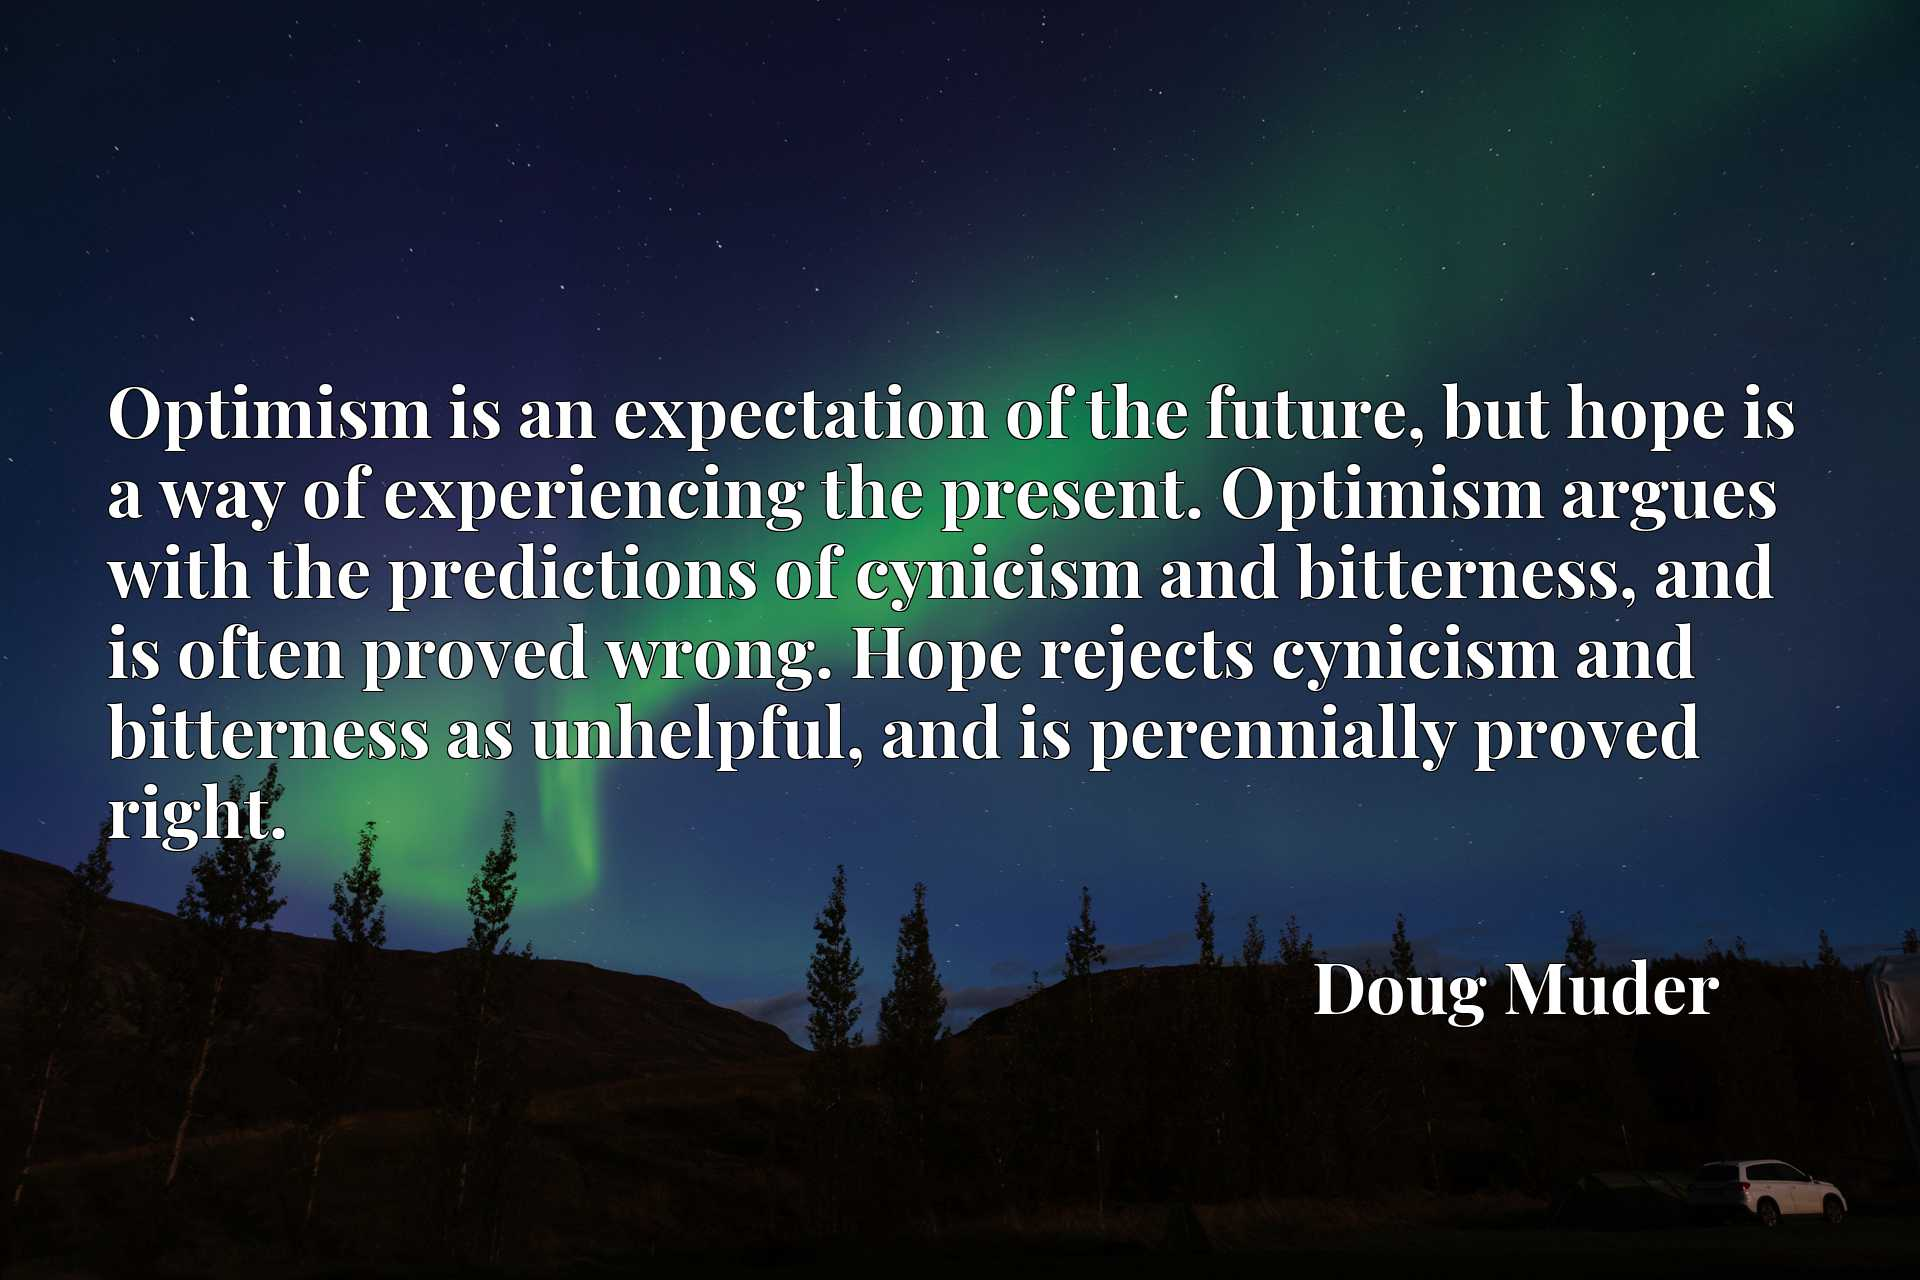 Optimism is an expectation of the future, but hope is a way of experiencing the present. Optimism argues with the predictions of cynicism and bitterness, and is often proved wrong. Hope rejects cynicism and bitterness as unhelpful, and is perennially proved right.